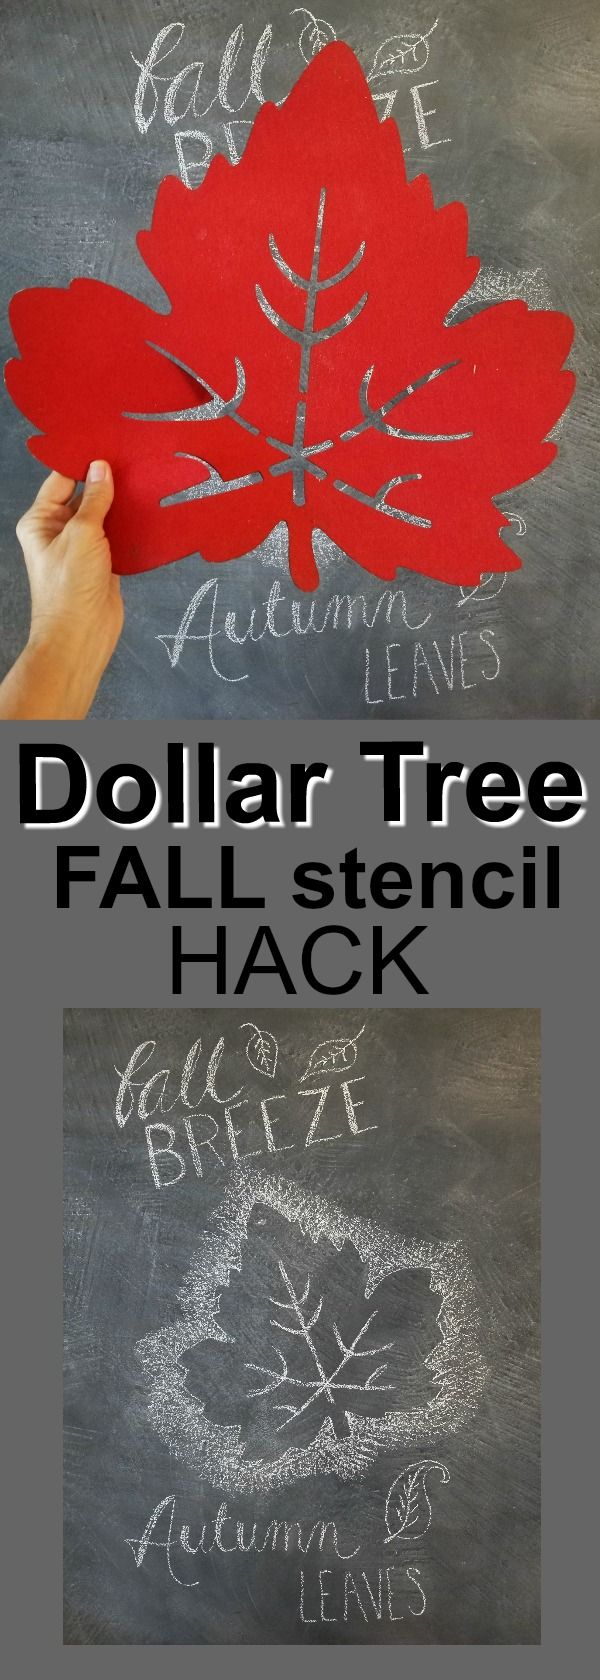 I can't believe I never thought of this! The Dollar Tree has these felt thingies that are perfect for stencils. $1!!!